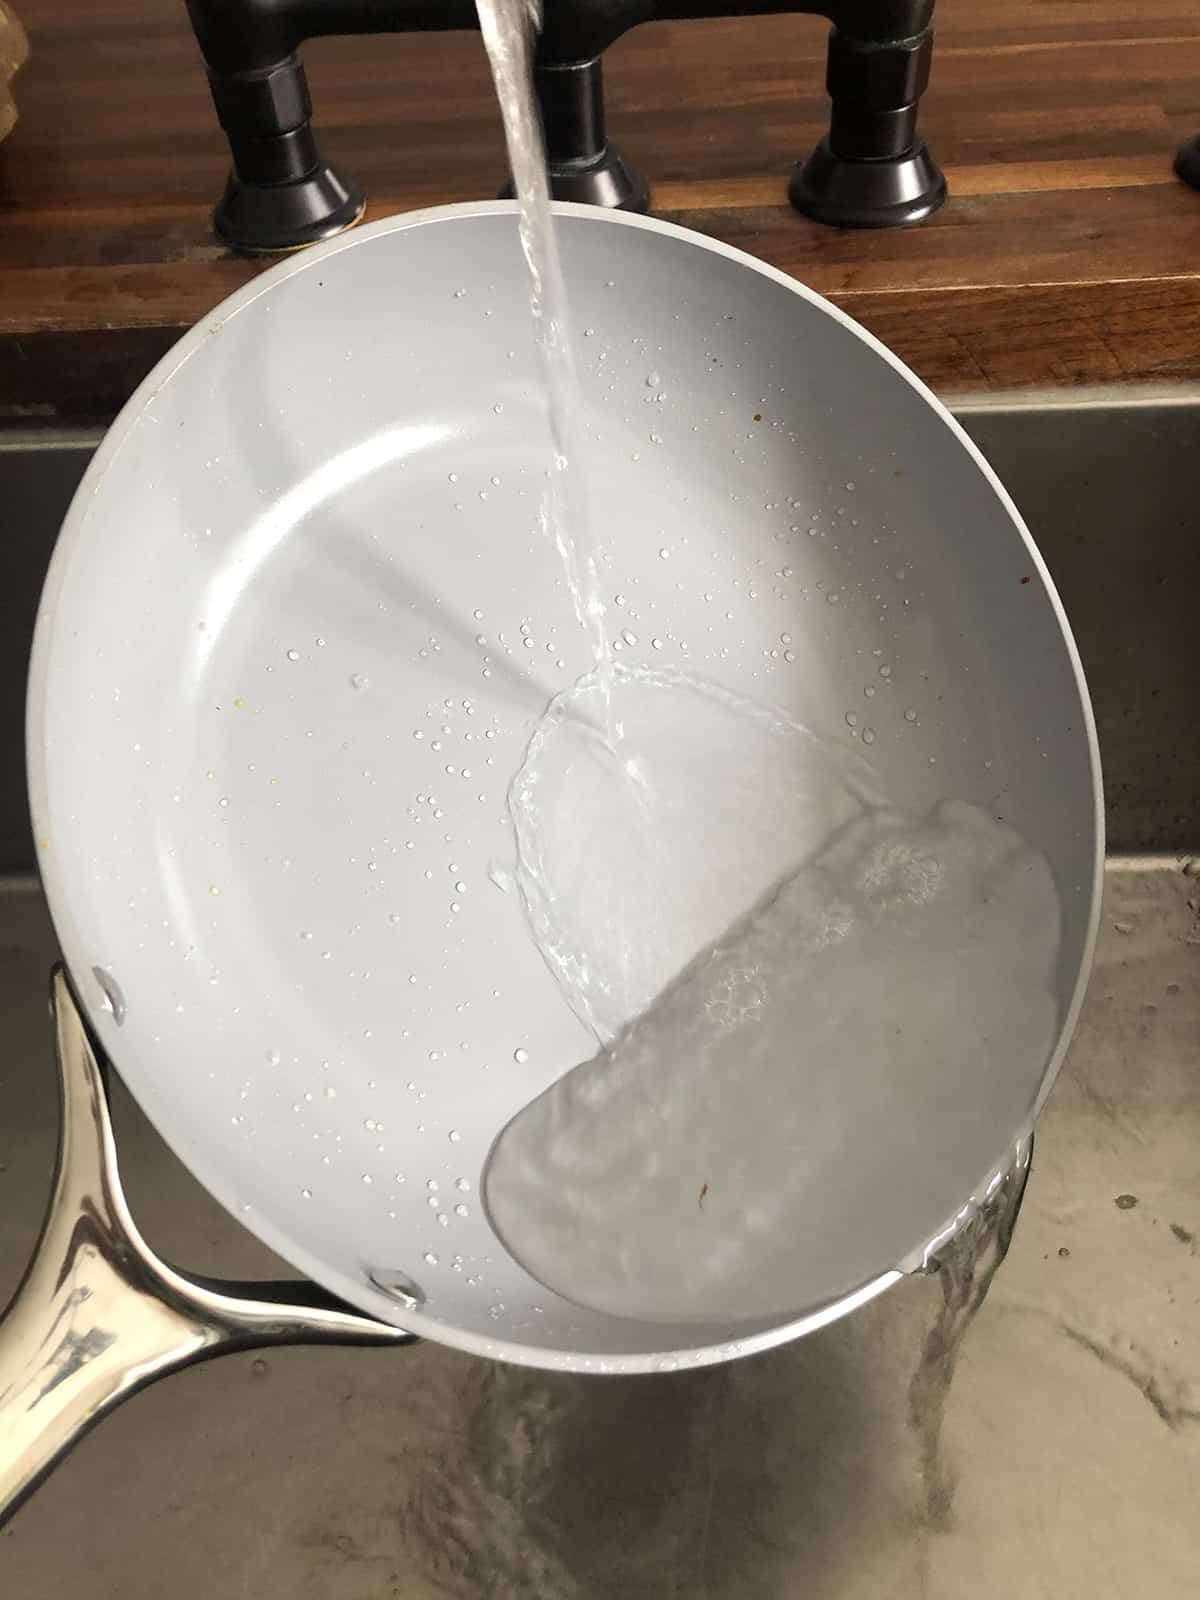 rinsing a Caraway home non-stick frypan in the sink